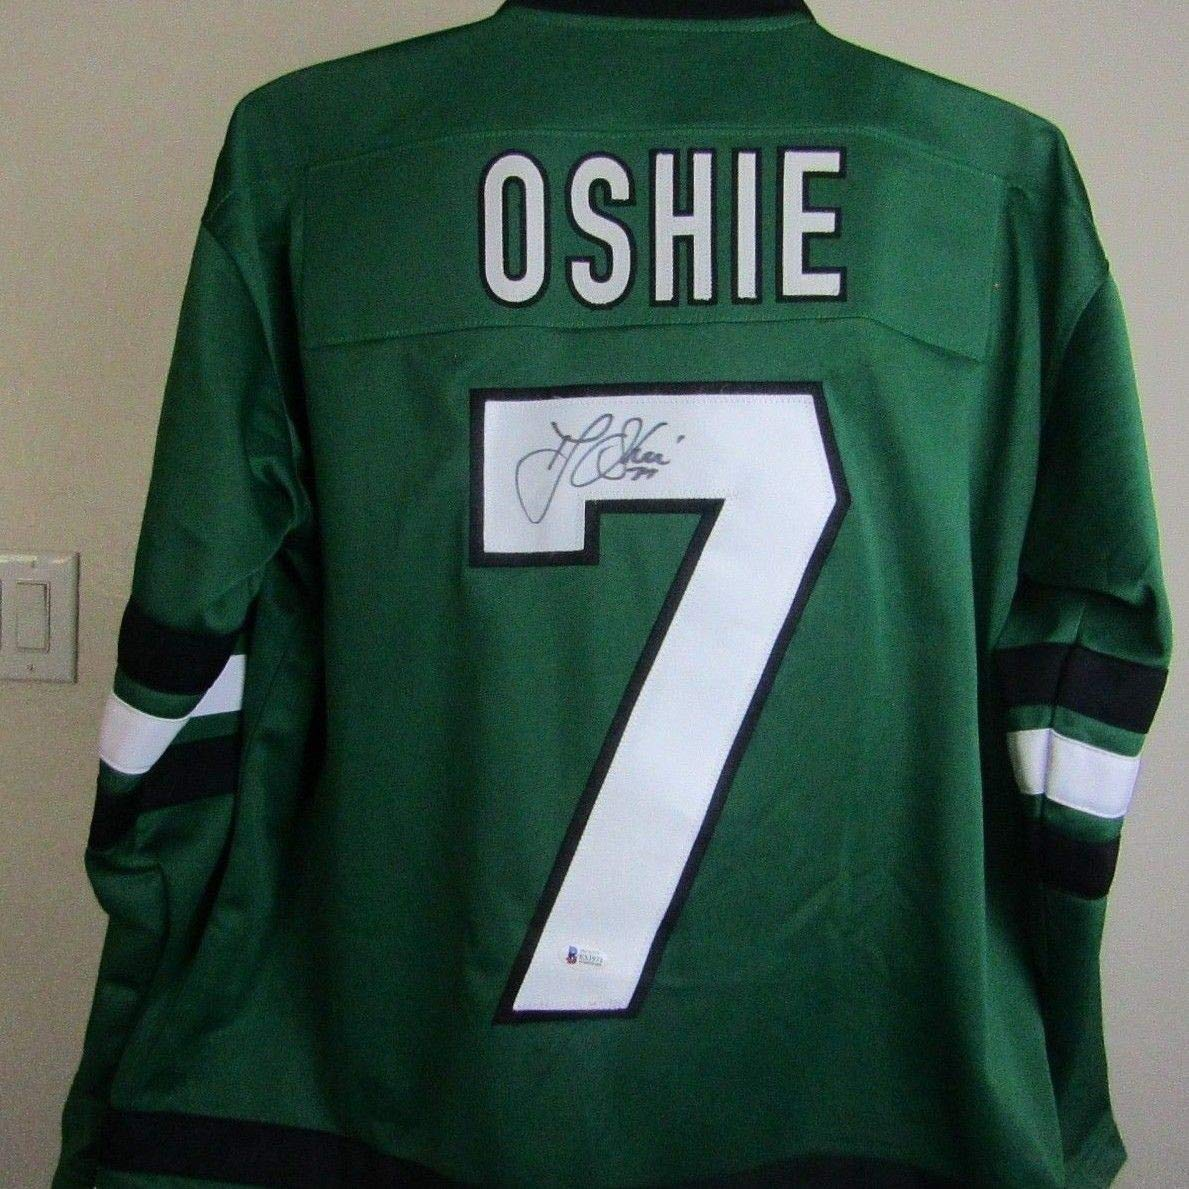 Tj Oshie Autographed Signed North Dakota Sioux Jersey Beckett Coa at  Amazon s Sports Collectibles Store 5a984708702